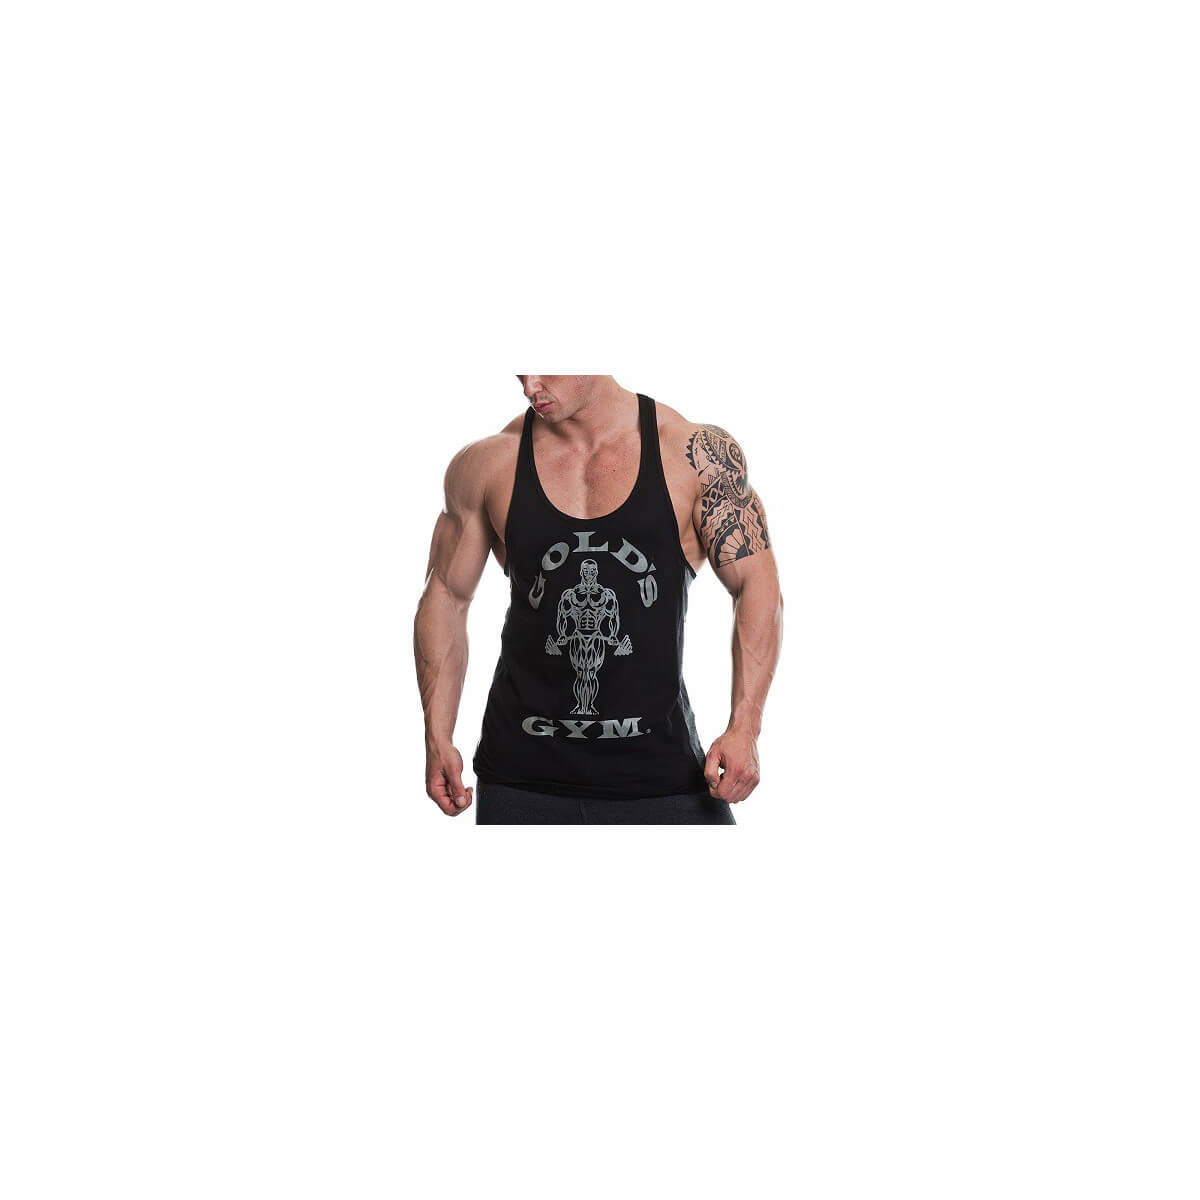 MUSCLE JOE TONAL PANEL STRINGER